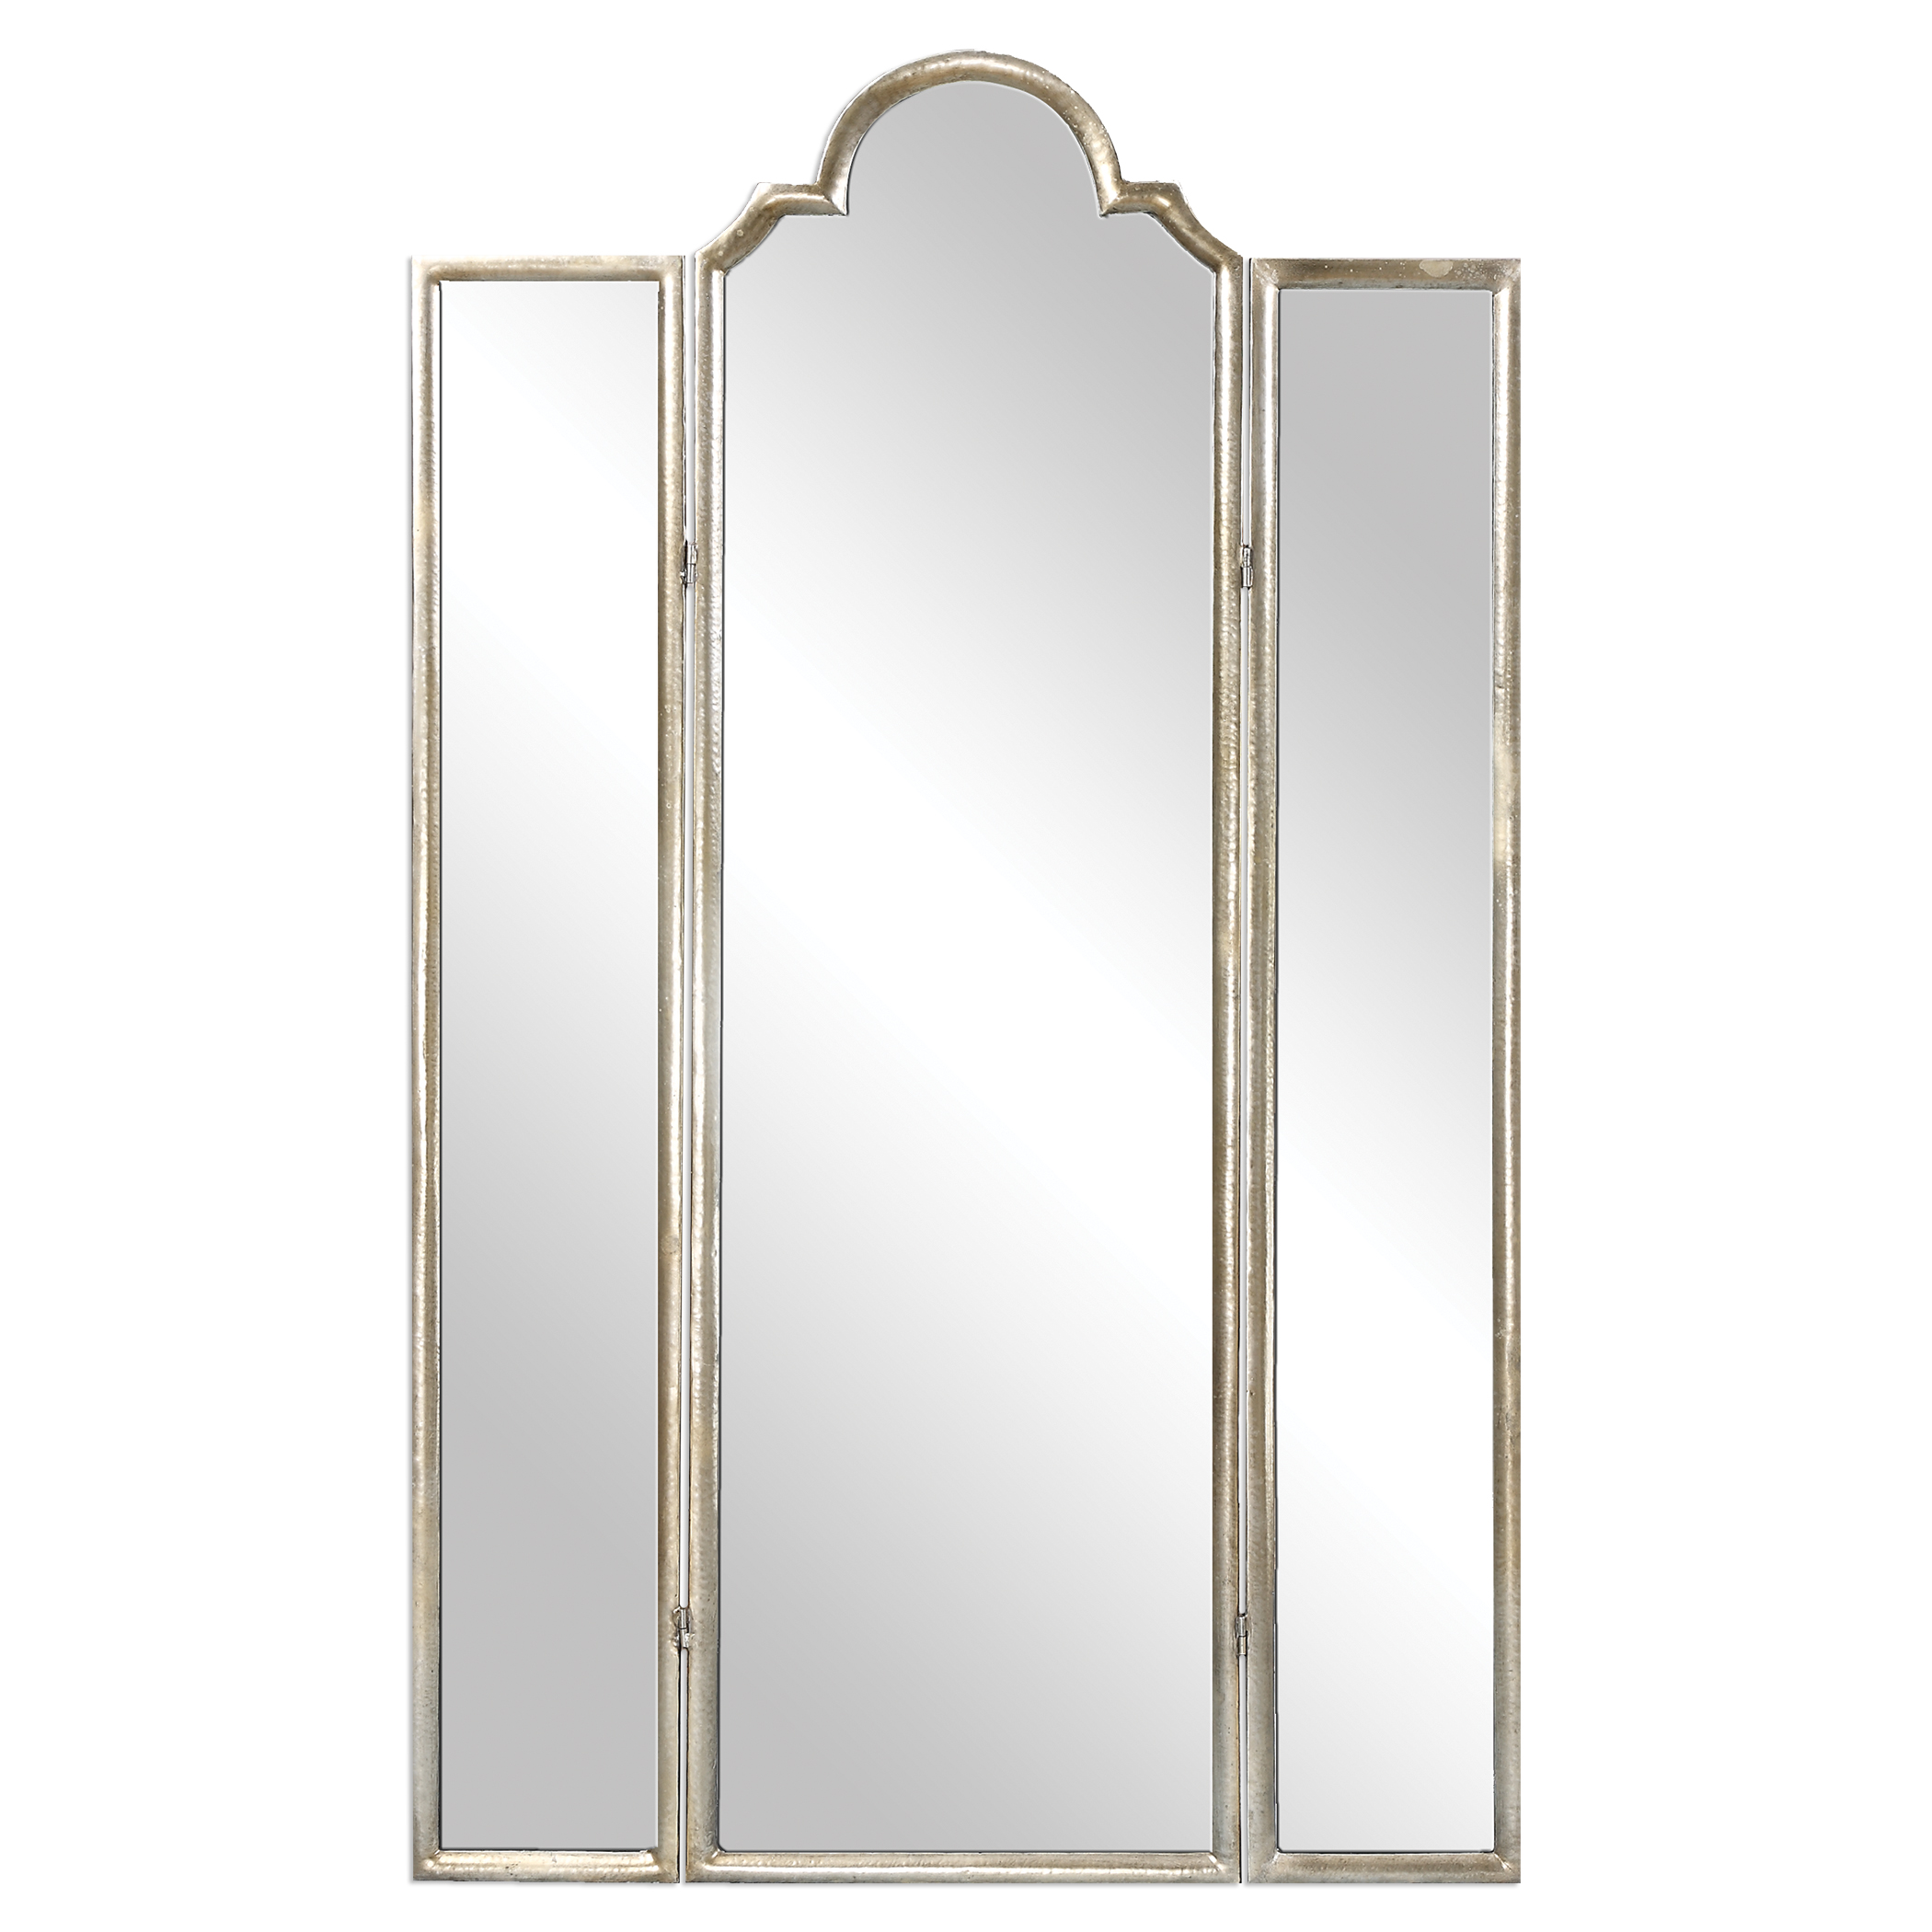 Uttermost Accent Furniture Neema Three Paneled Mirror Screen - Item Number: 24604